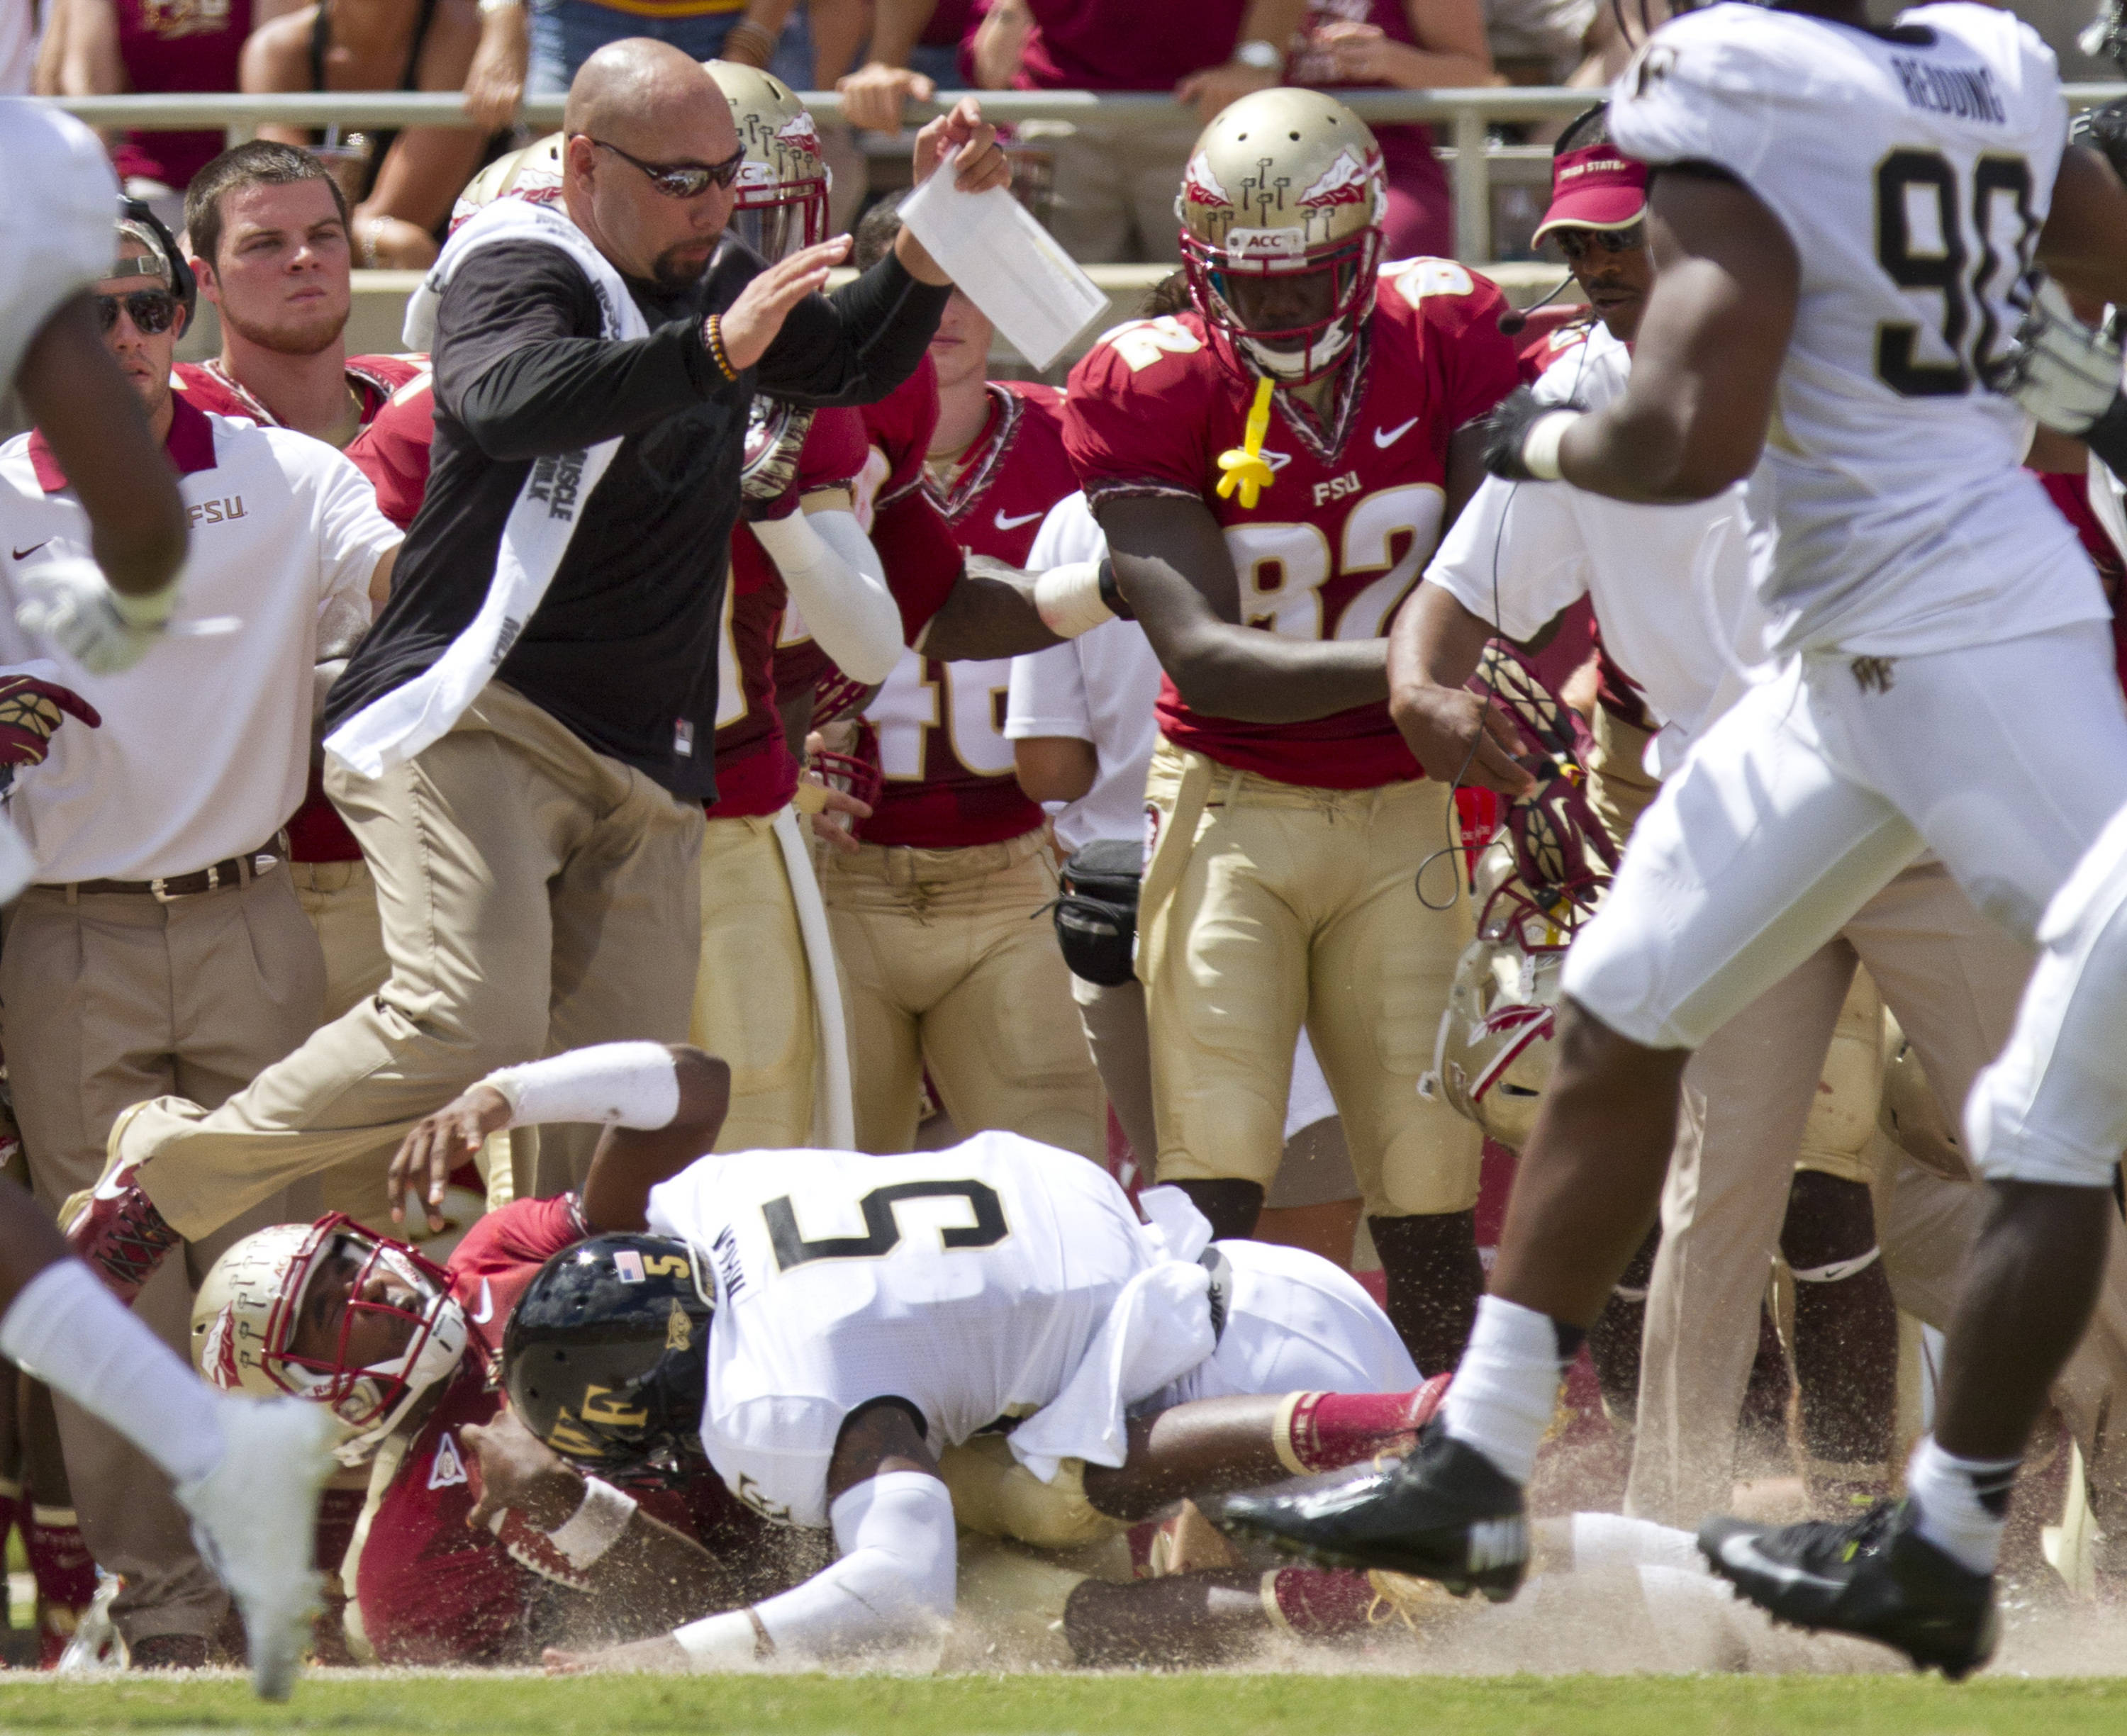 People on the FSU sideline jump to avoid being hit by players.